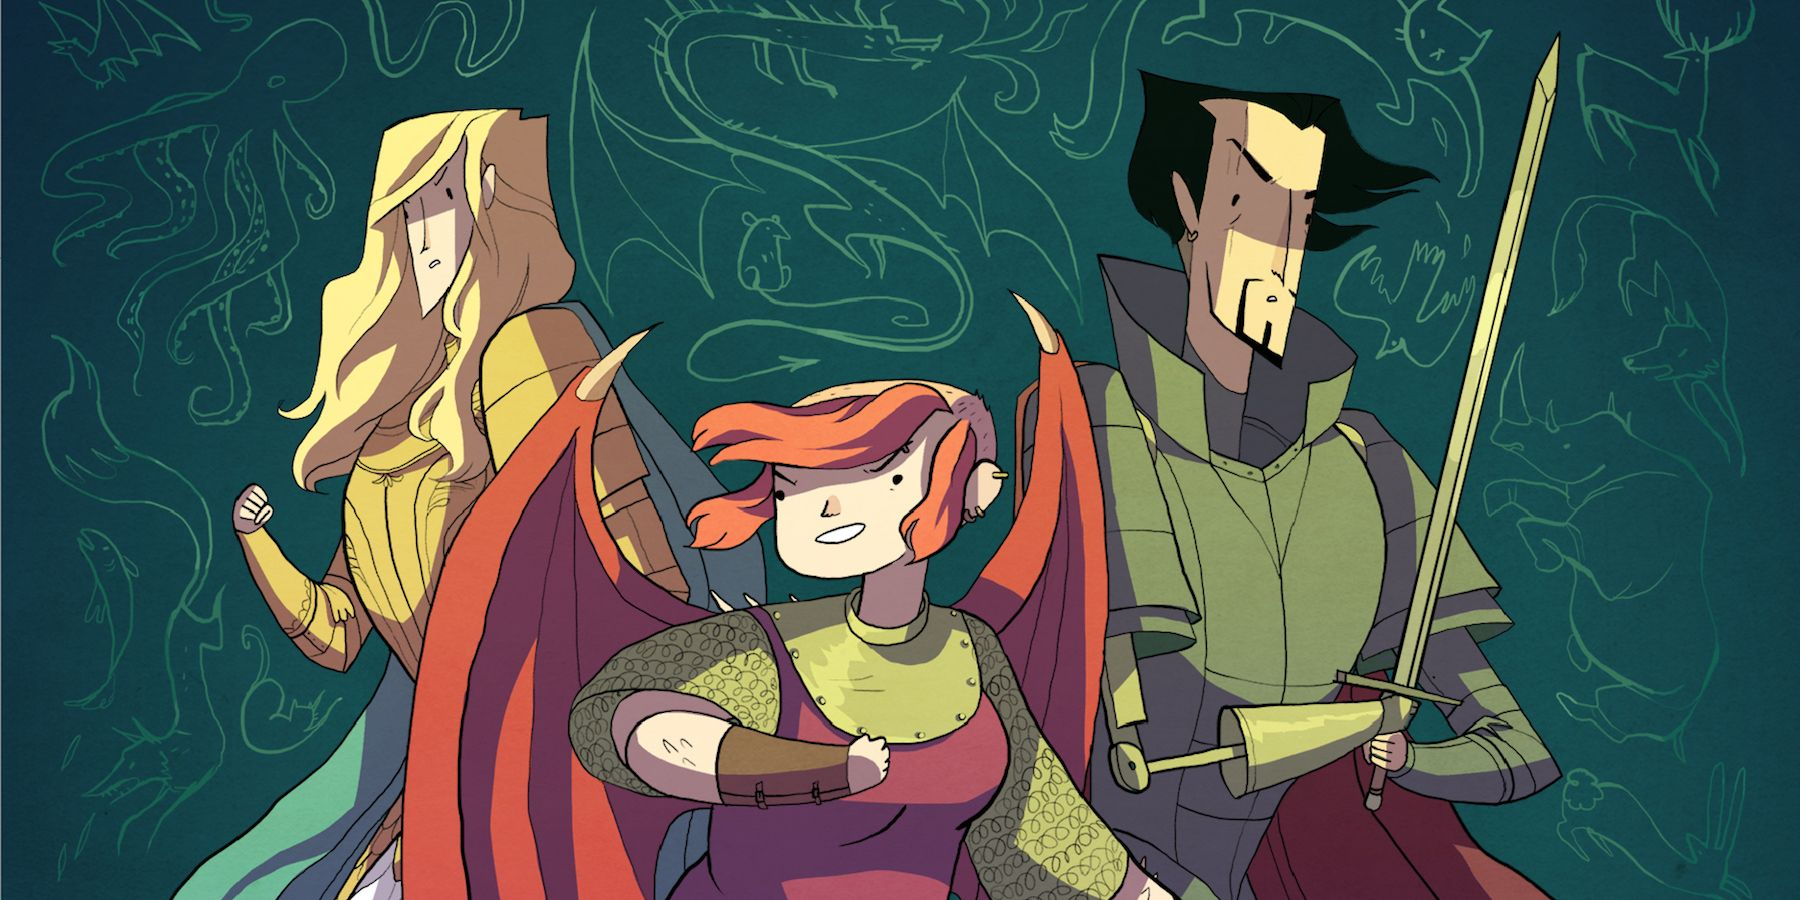 Nimona Animated Movie Gets a 2020 Release Date | Screen Rant